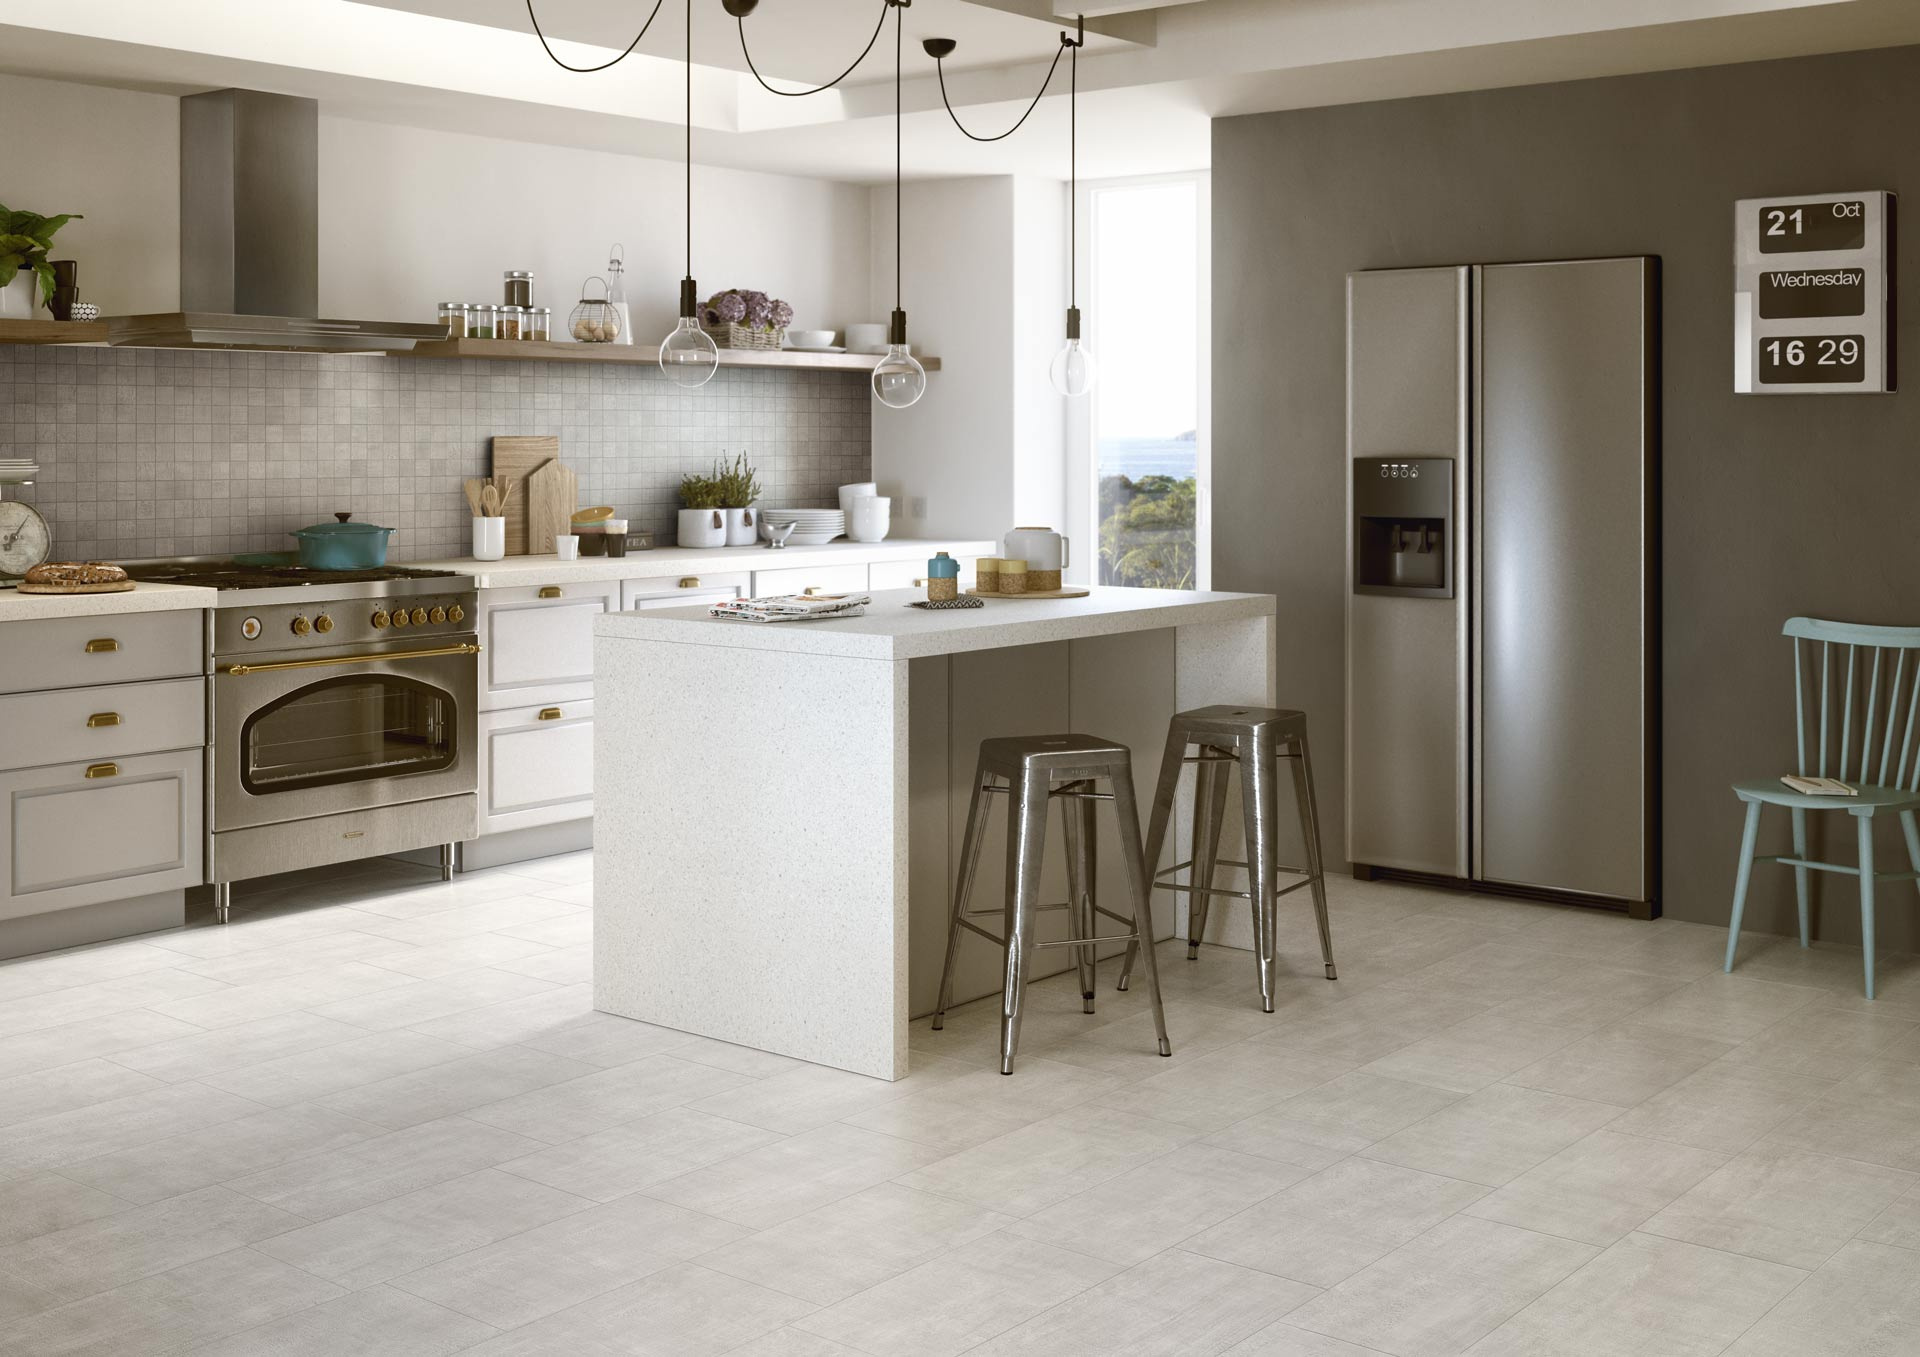 Atlas Concorde USA's Fray in White Pearl used as kitchen flooring.